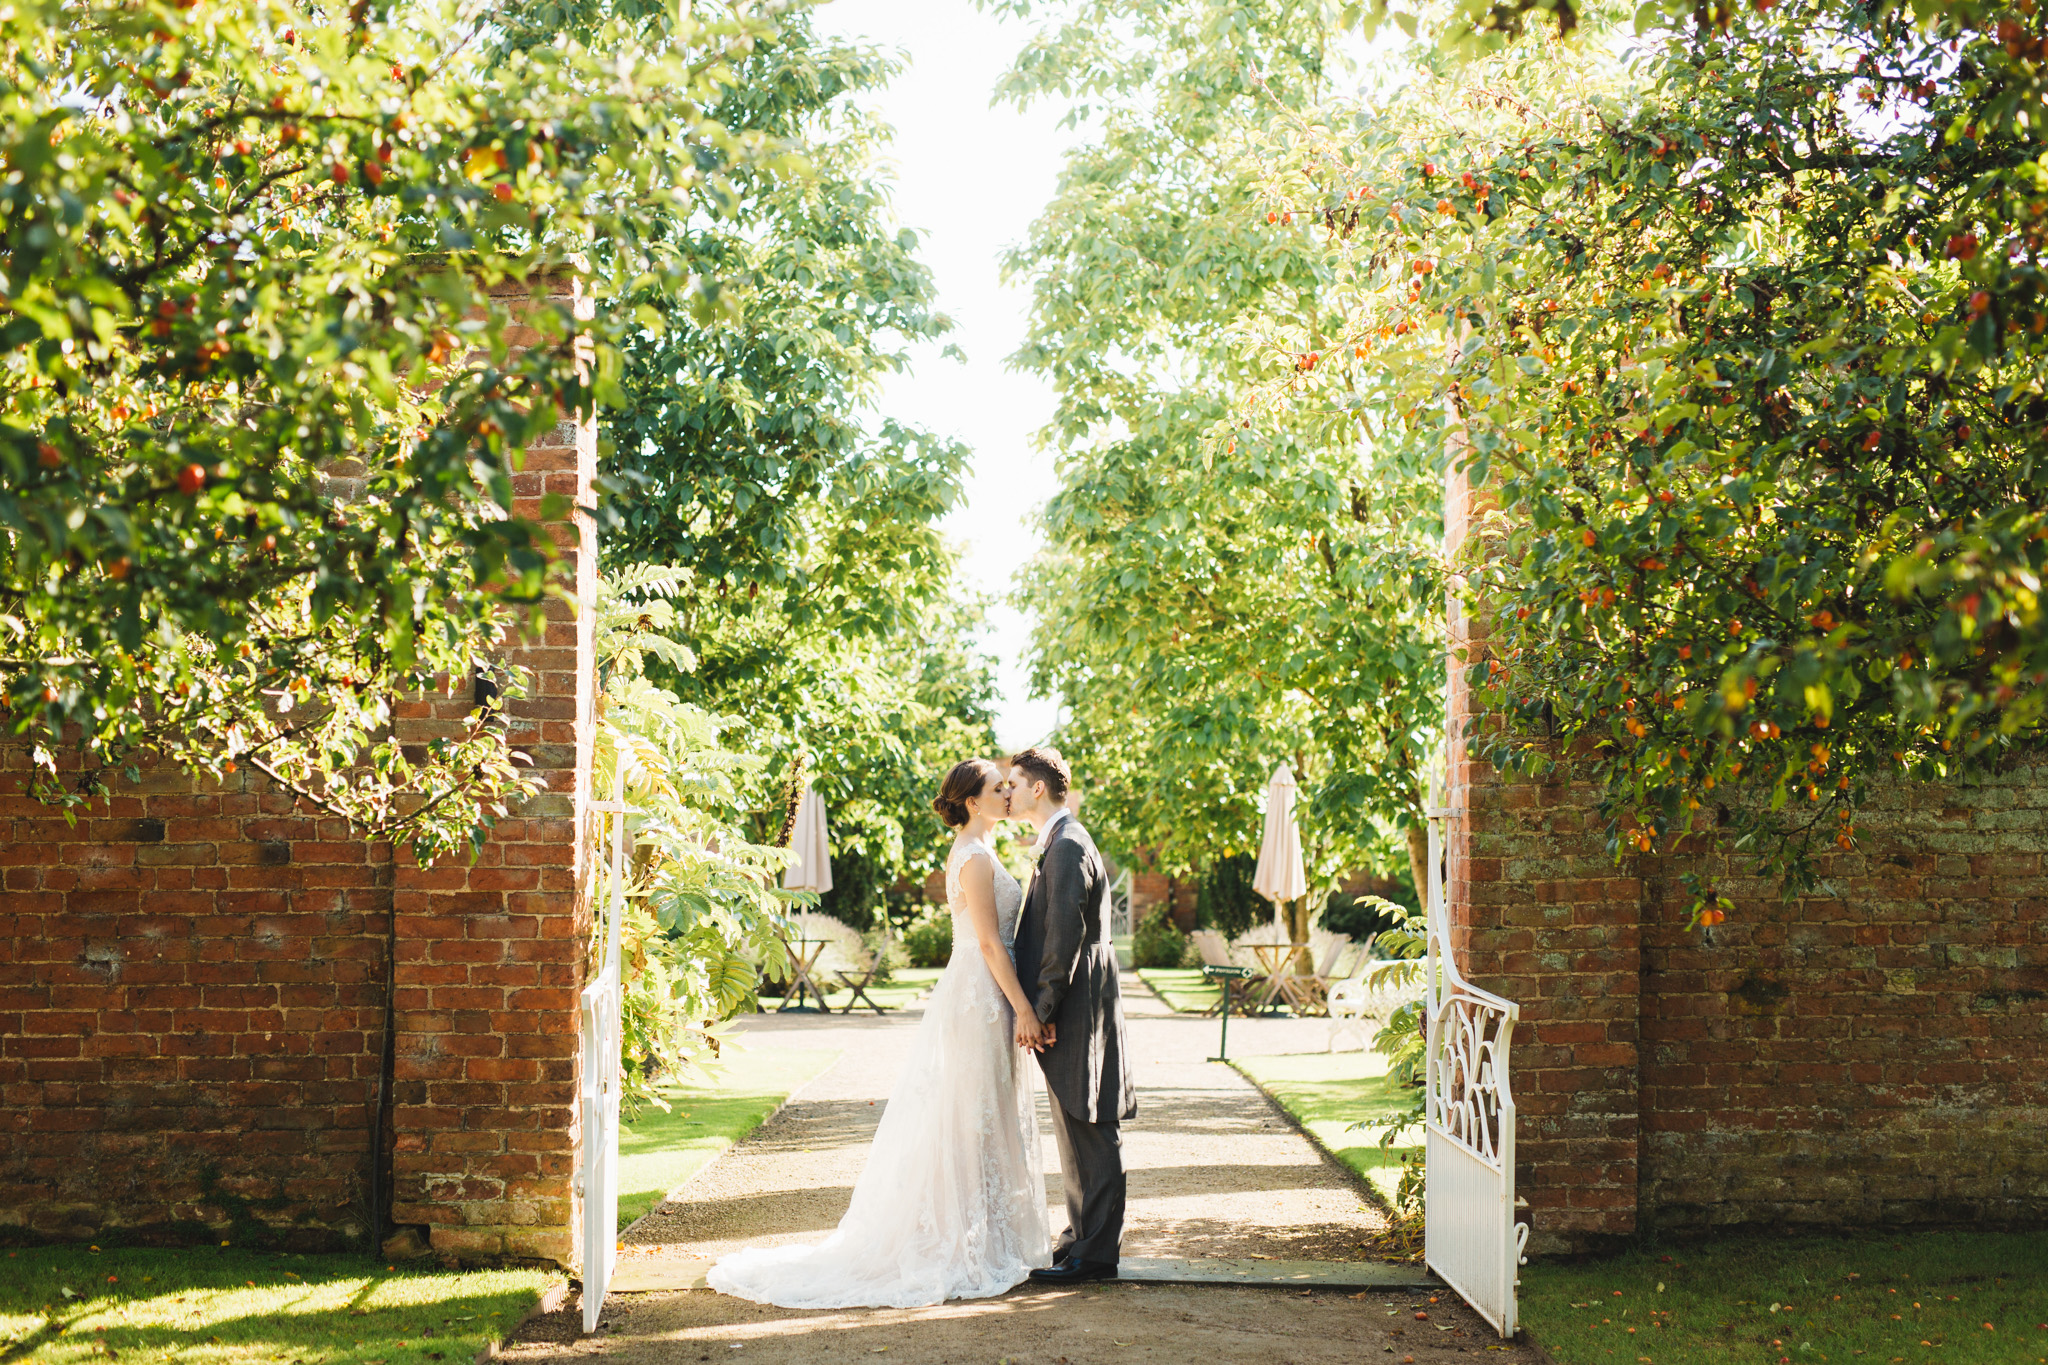 cat-lane-weddings__combermere-abbey-wedding-photography__clw__1619__38A1340.jpg